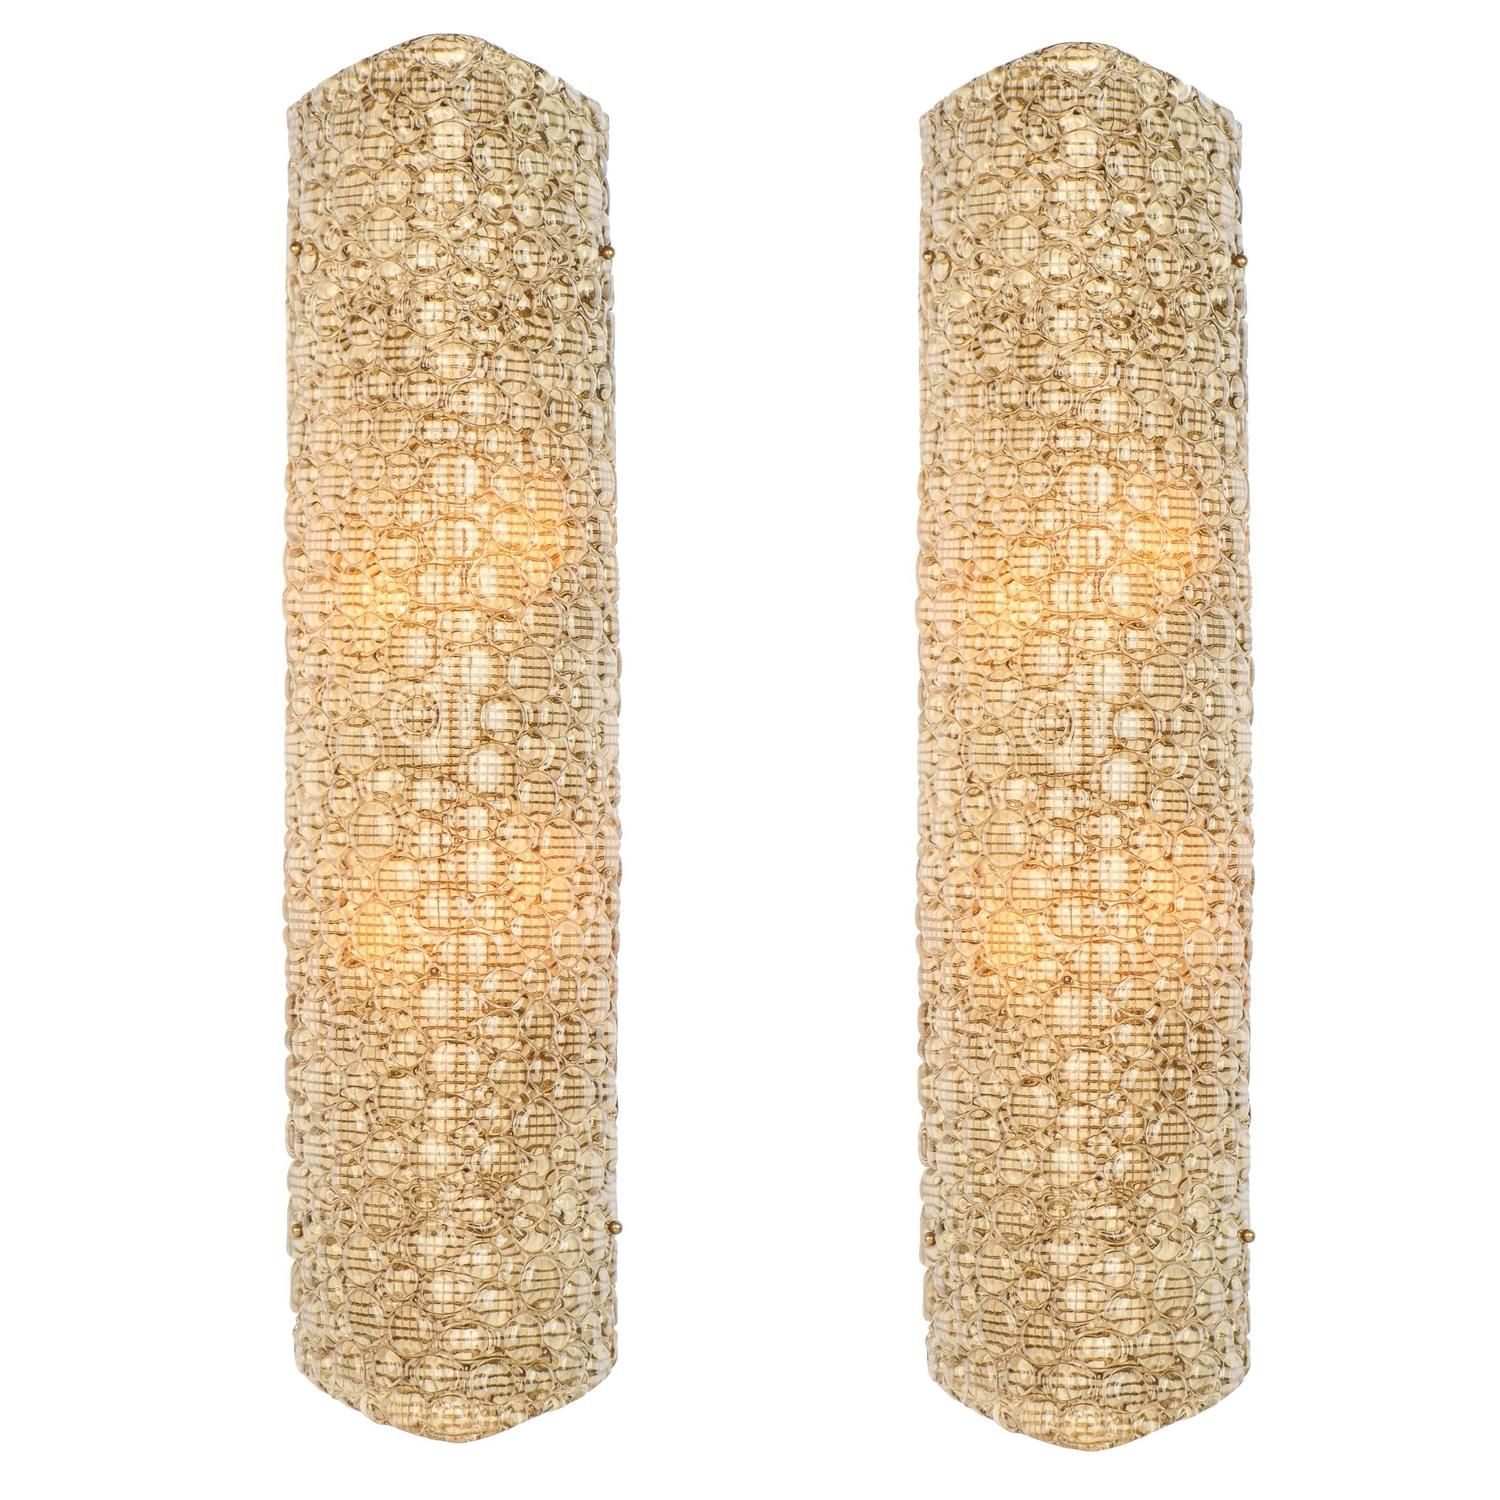 Pair of Large Murano Glass Wall Sconces | Tinagroo Sconces ...